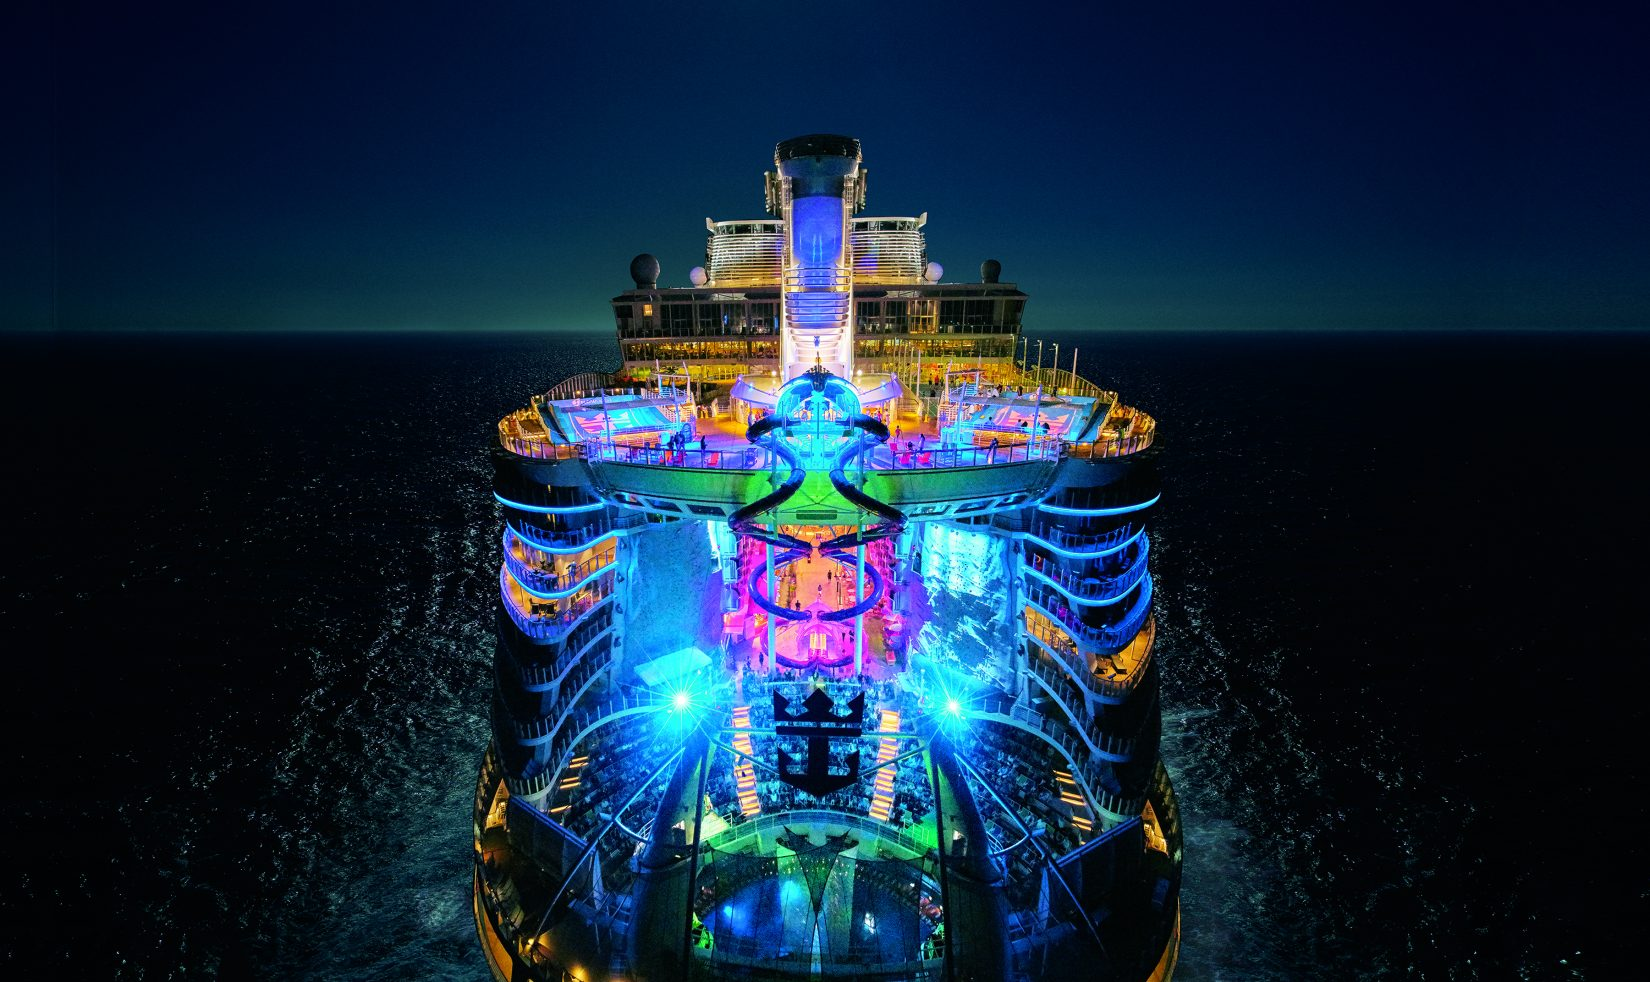 Symphony of the Seas, night view.